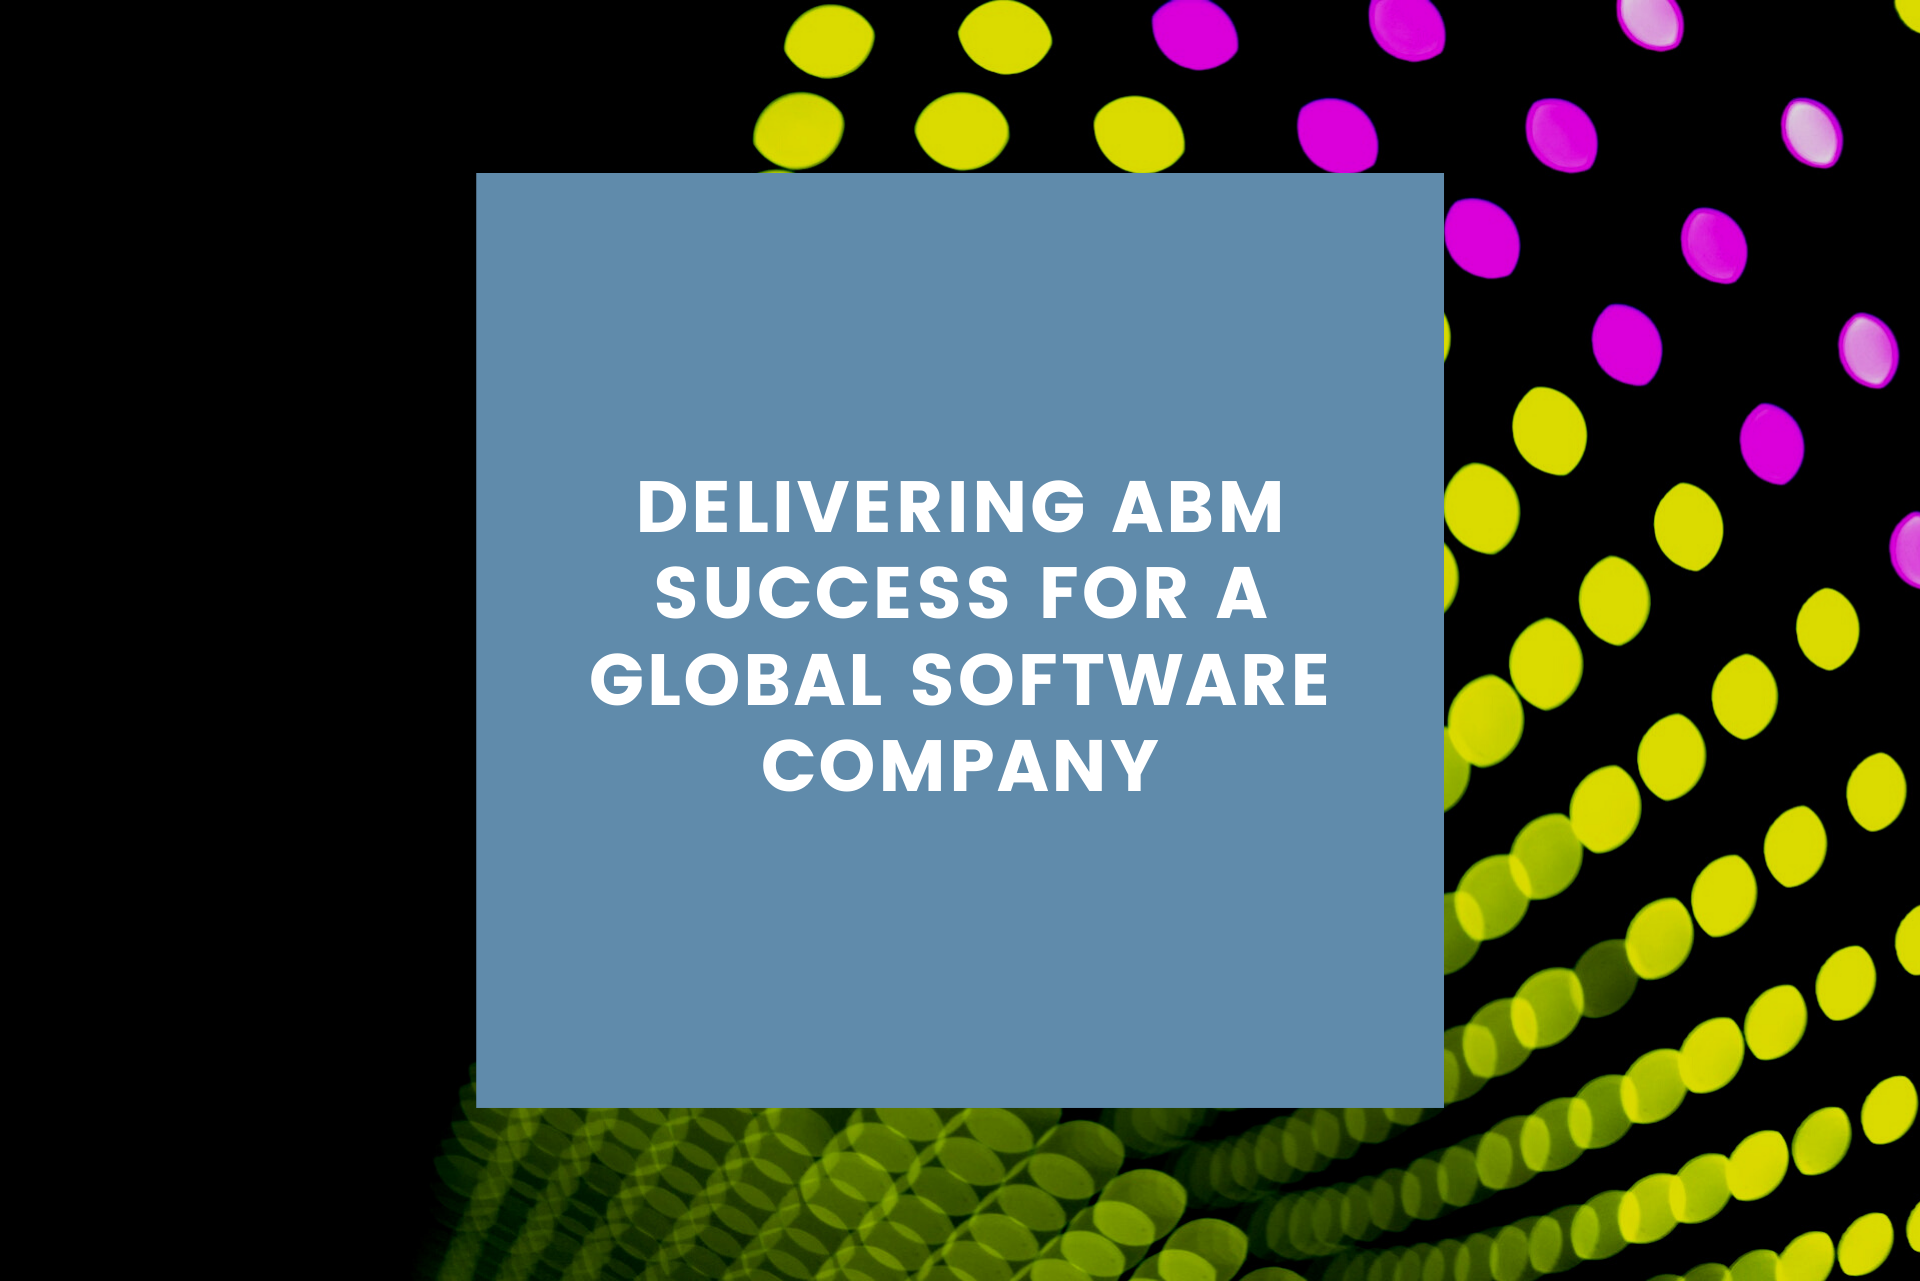 ABM strategy for global software company